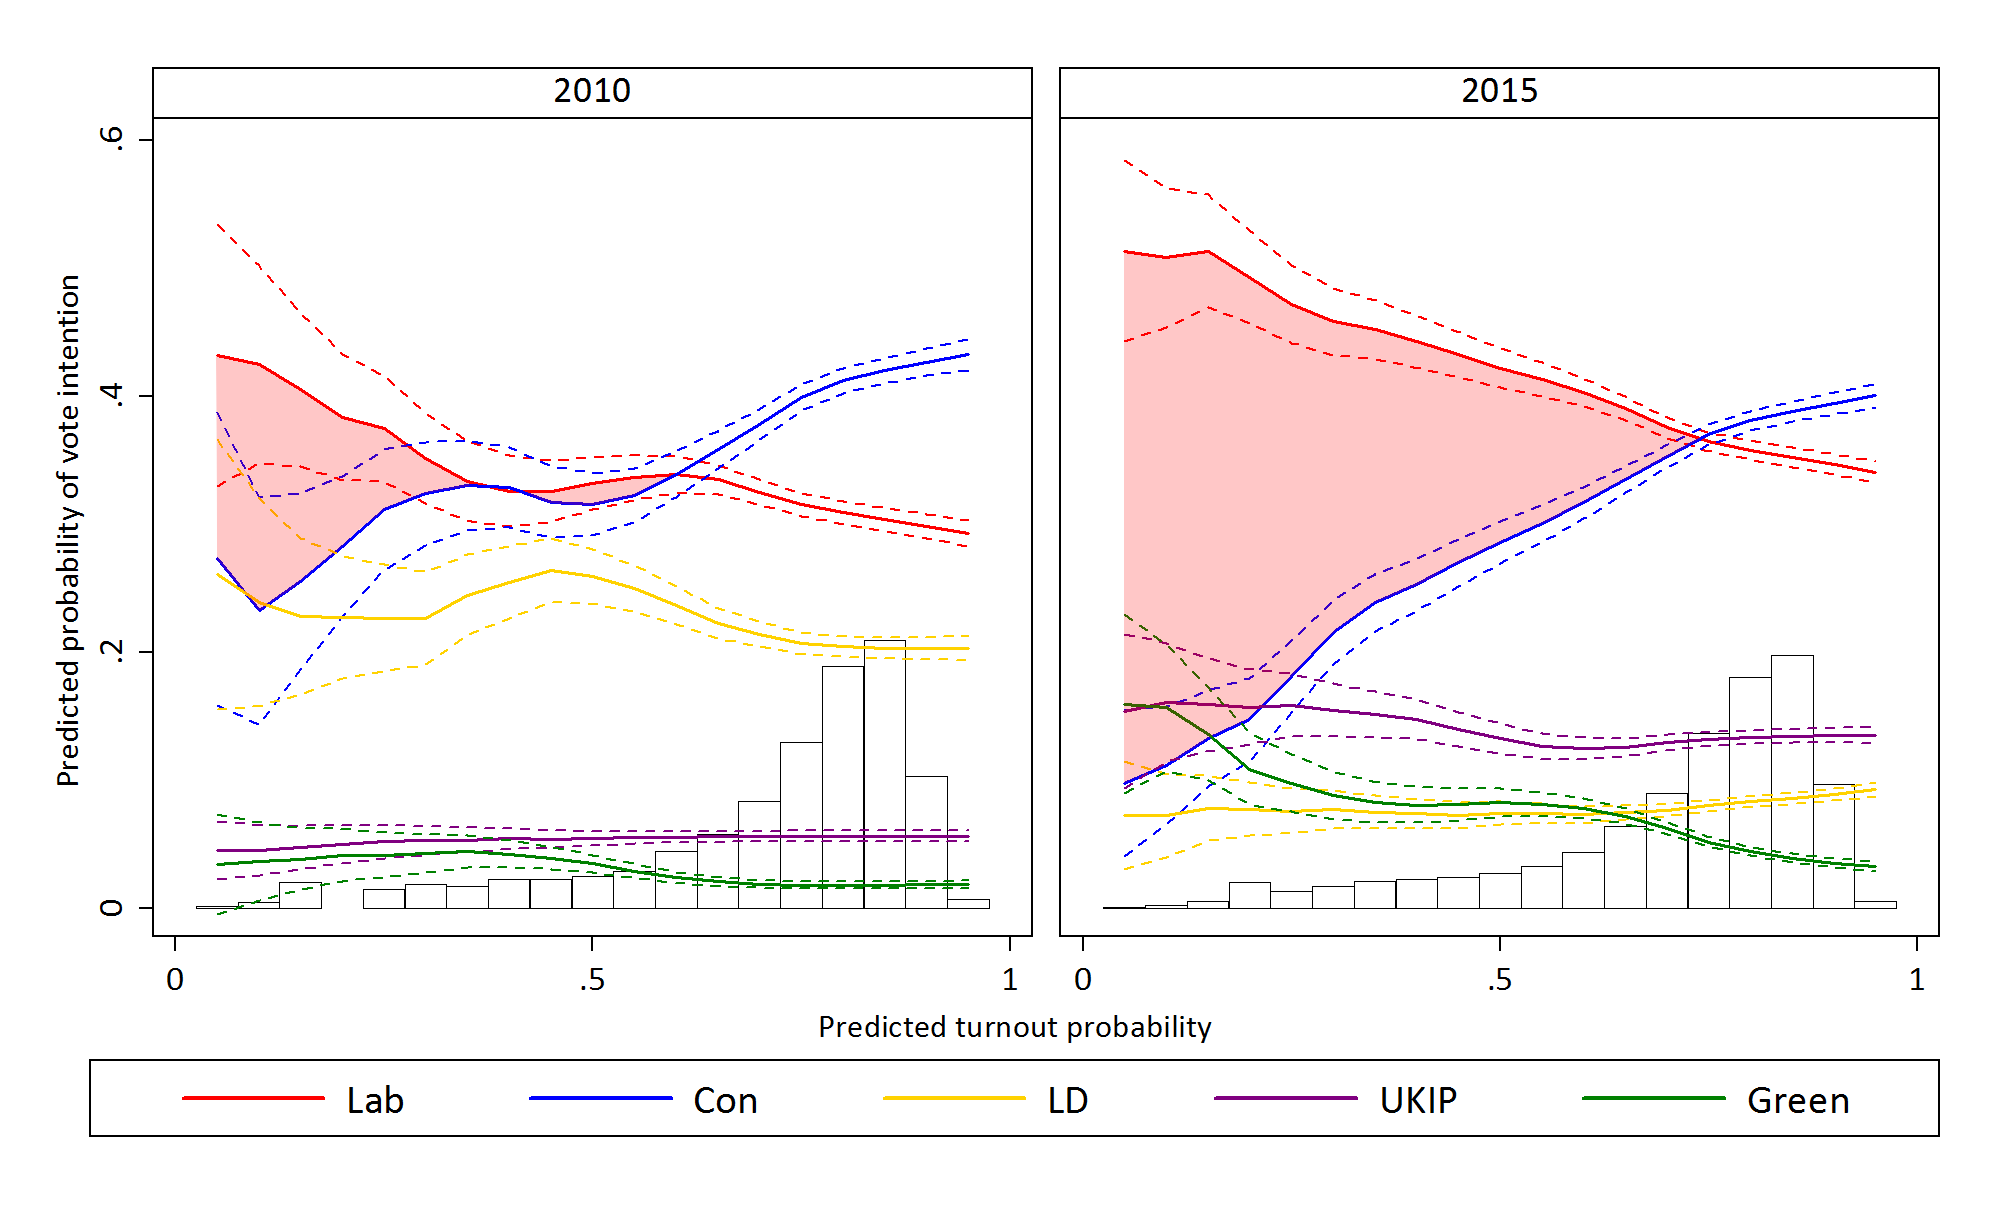 2010-vs-2015-turnout-lpoly-pre-shaded